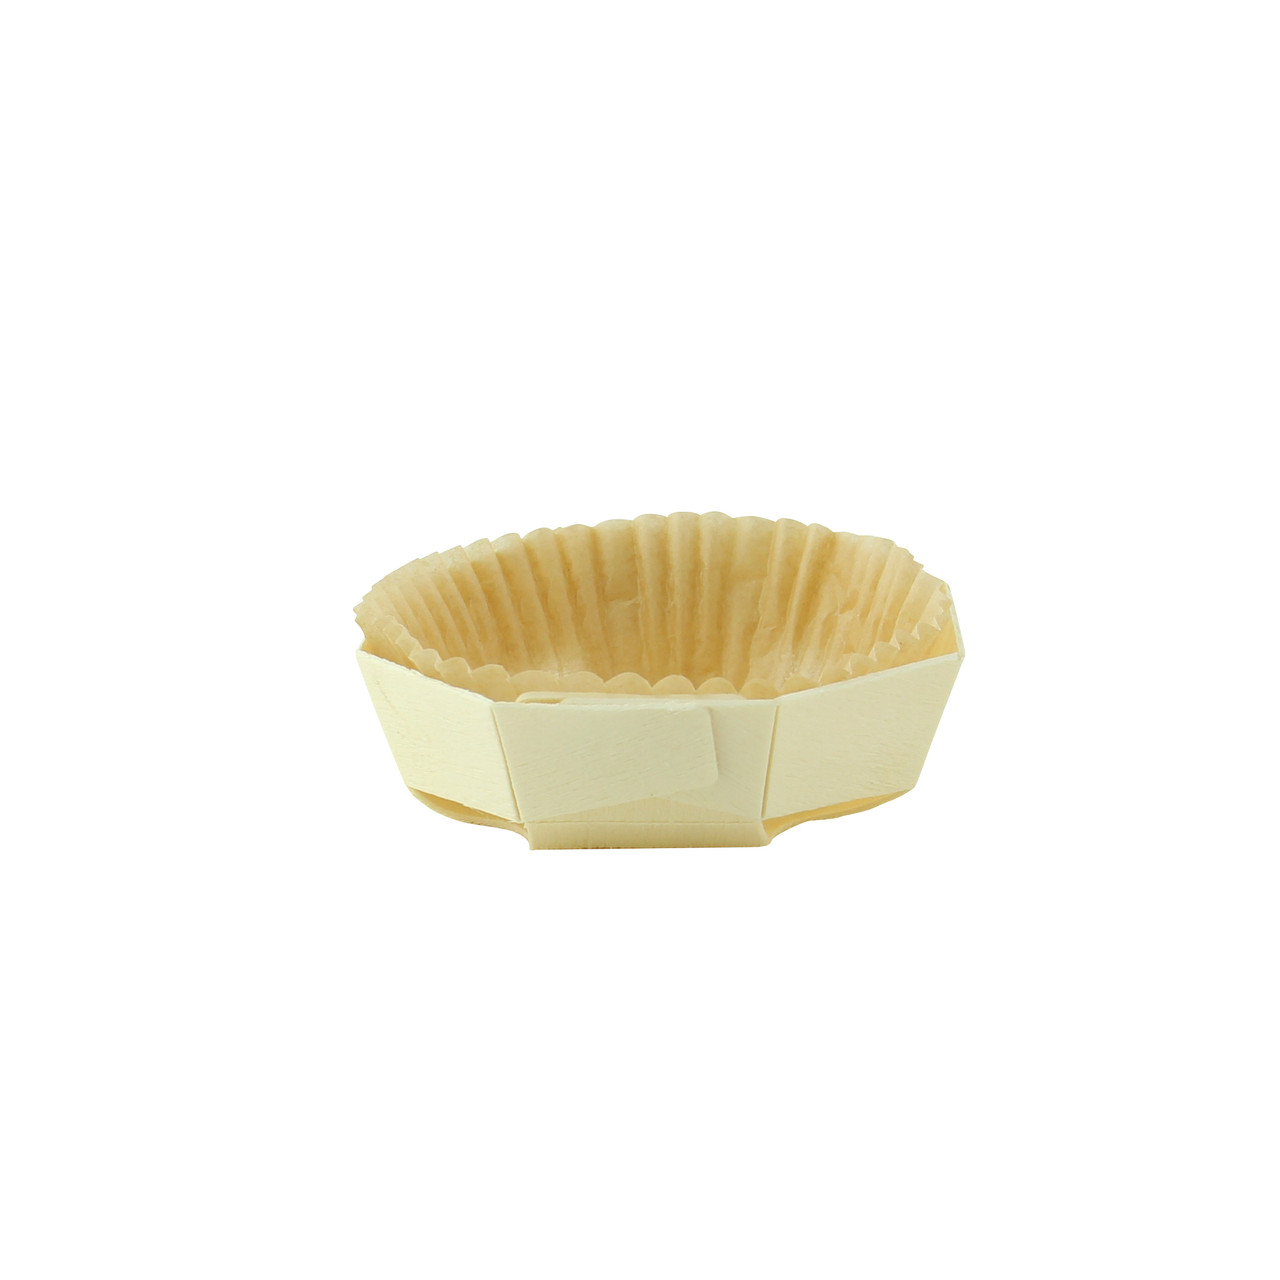 Round Baking Mold With Liner - L:4.4 x W:4 x H:1.2in